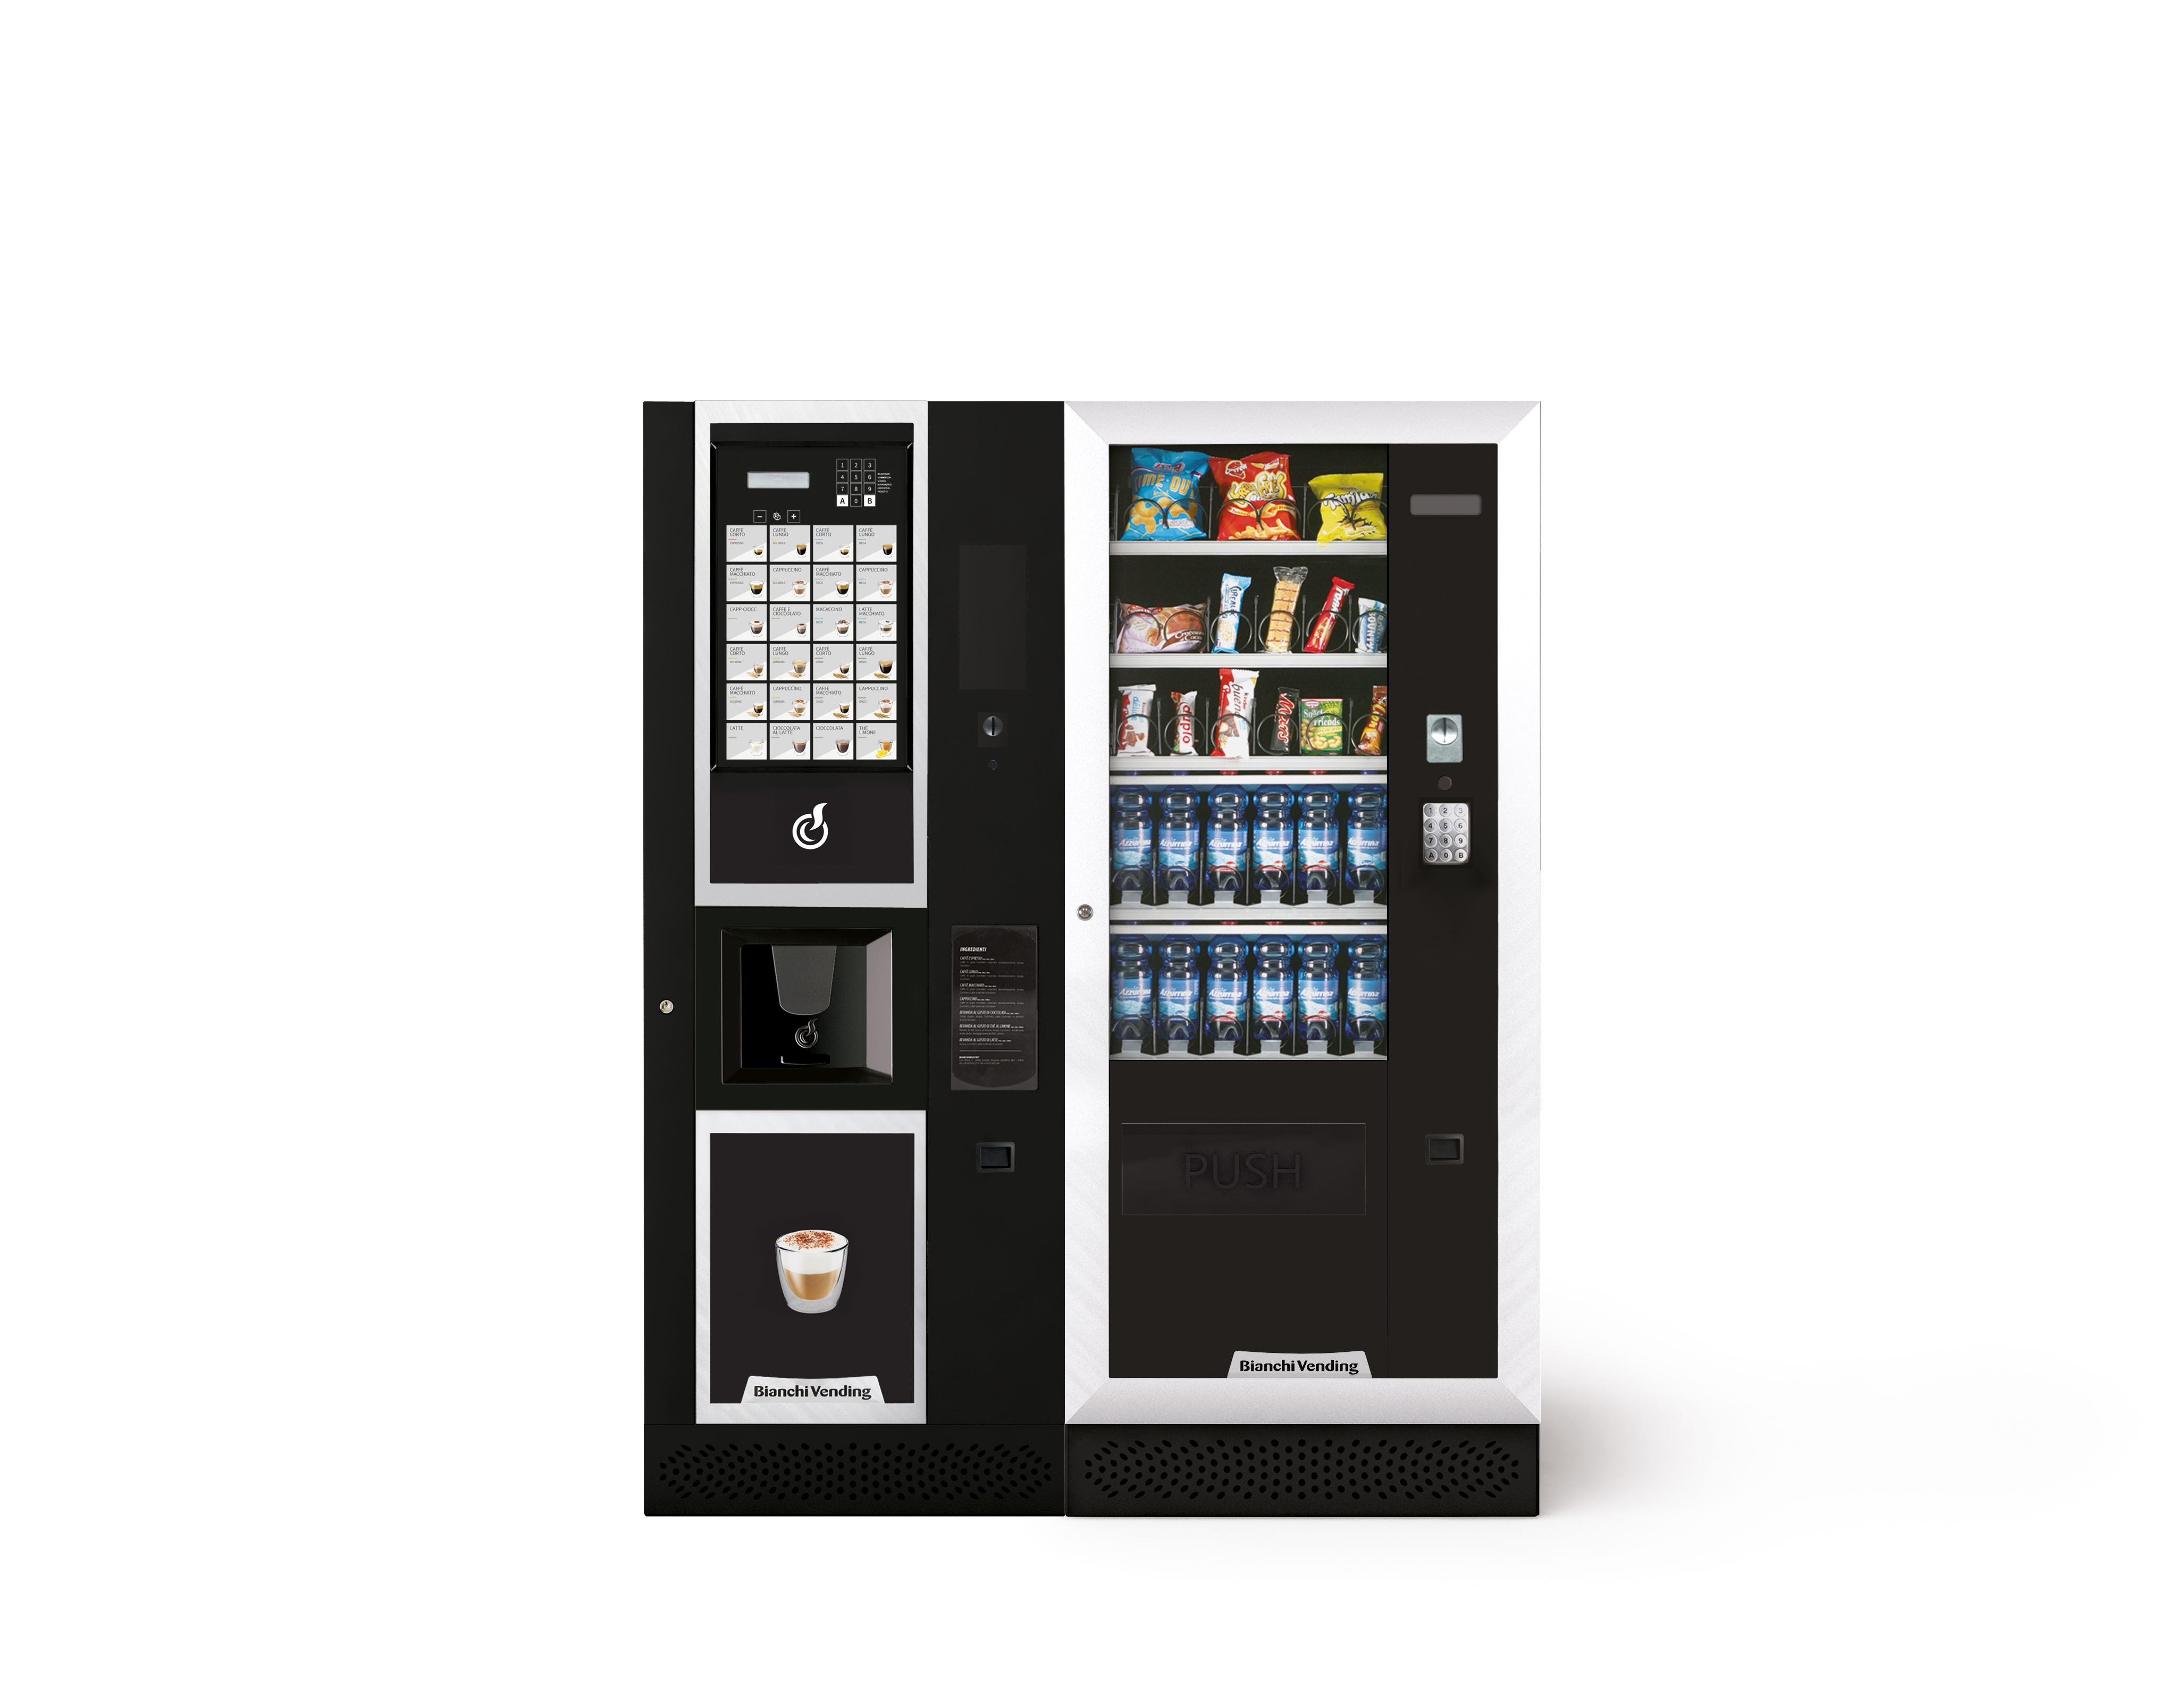 Kaffe Compagniet AS Bianchi lei400-easy-